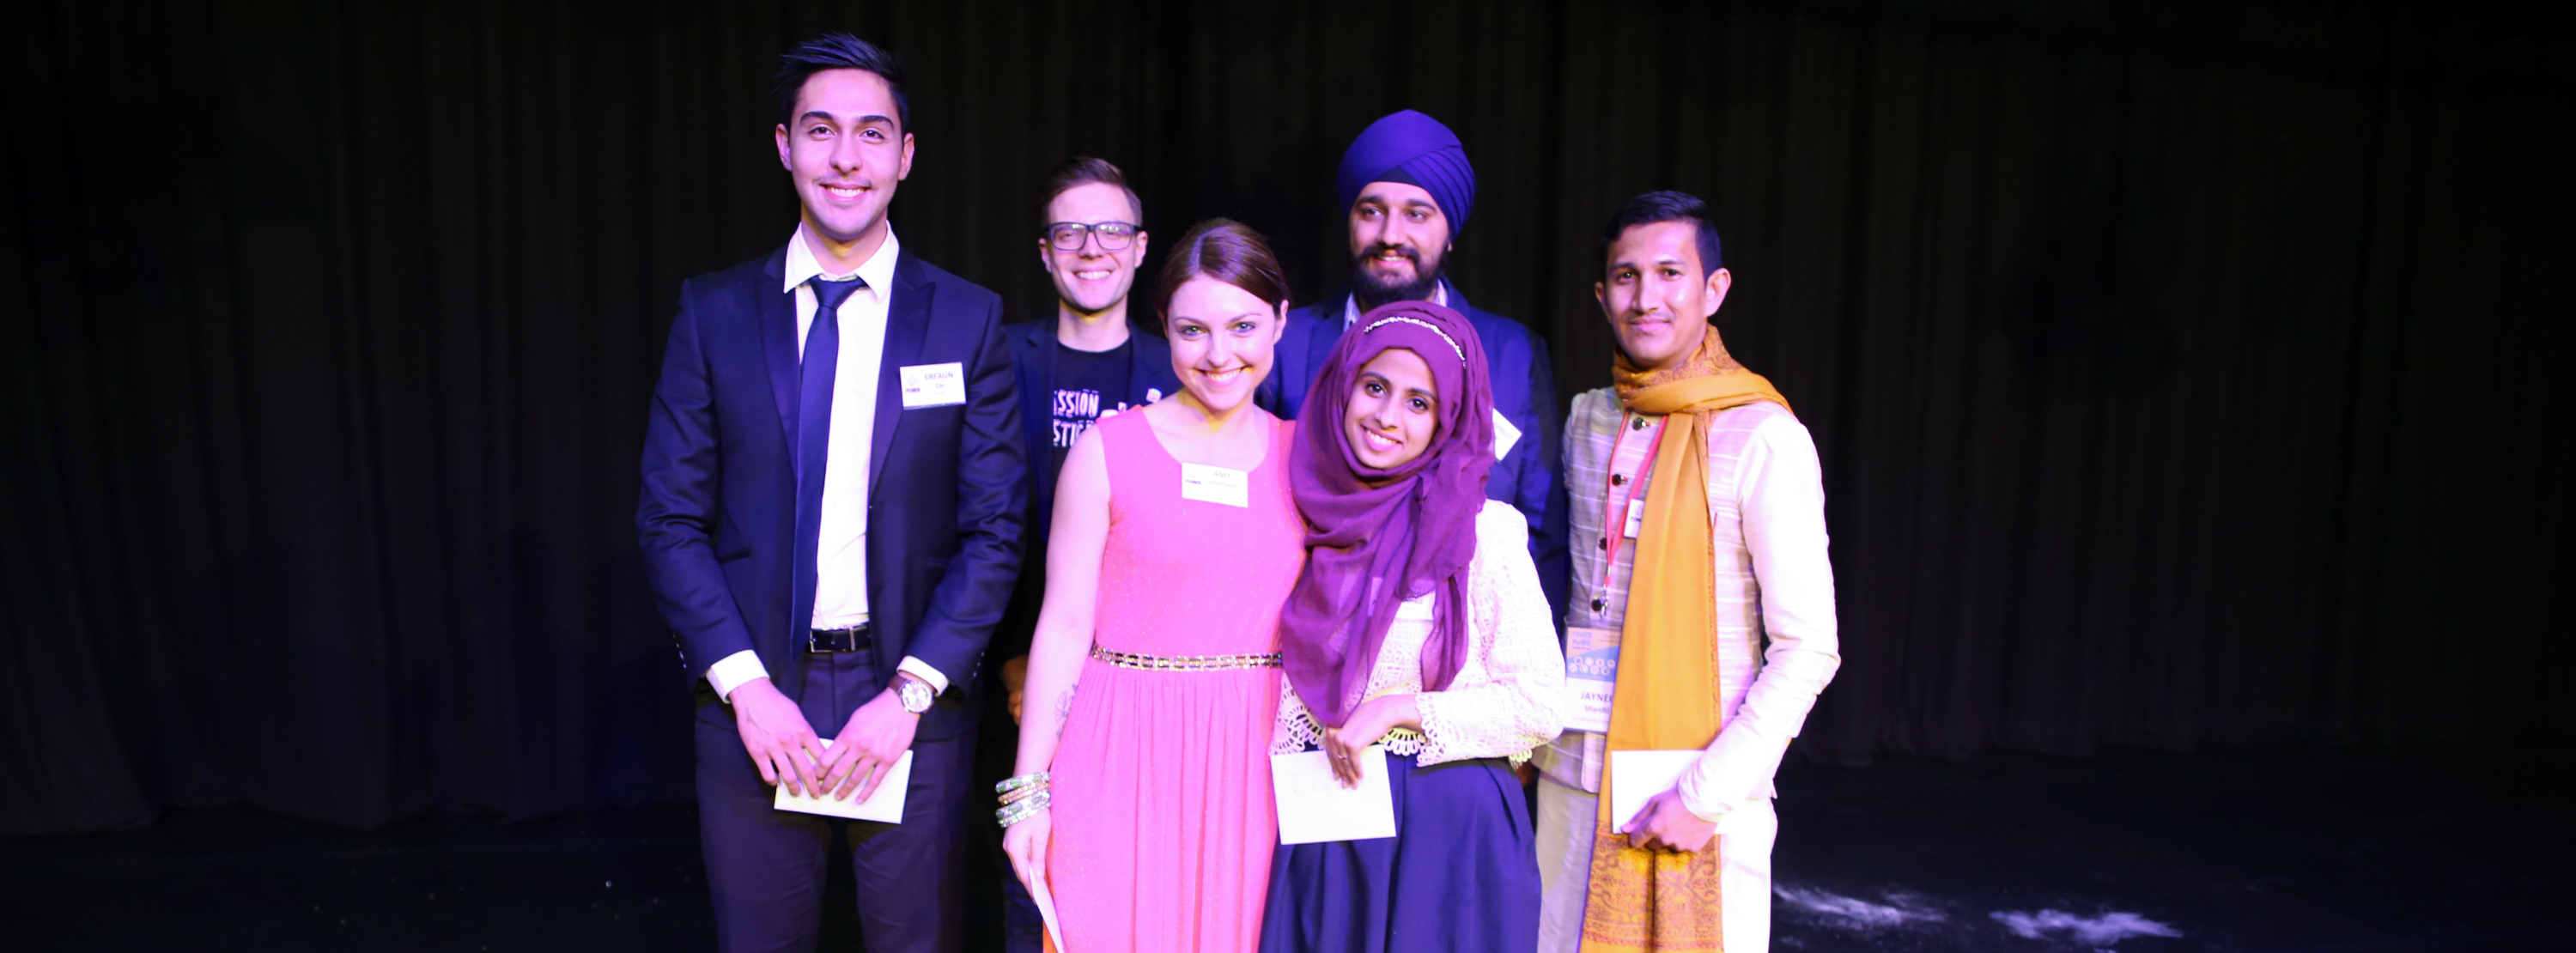 Sydney's Youth Model Interfaith Harmony, Justice & Compassion to the World